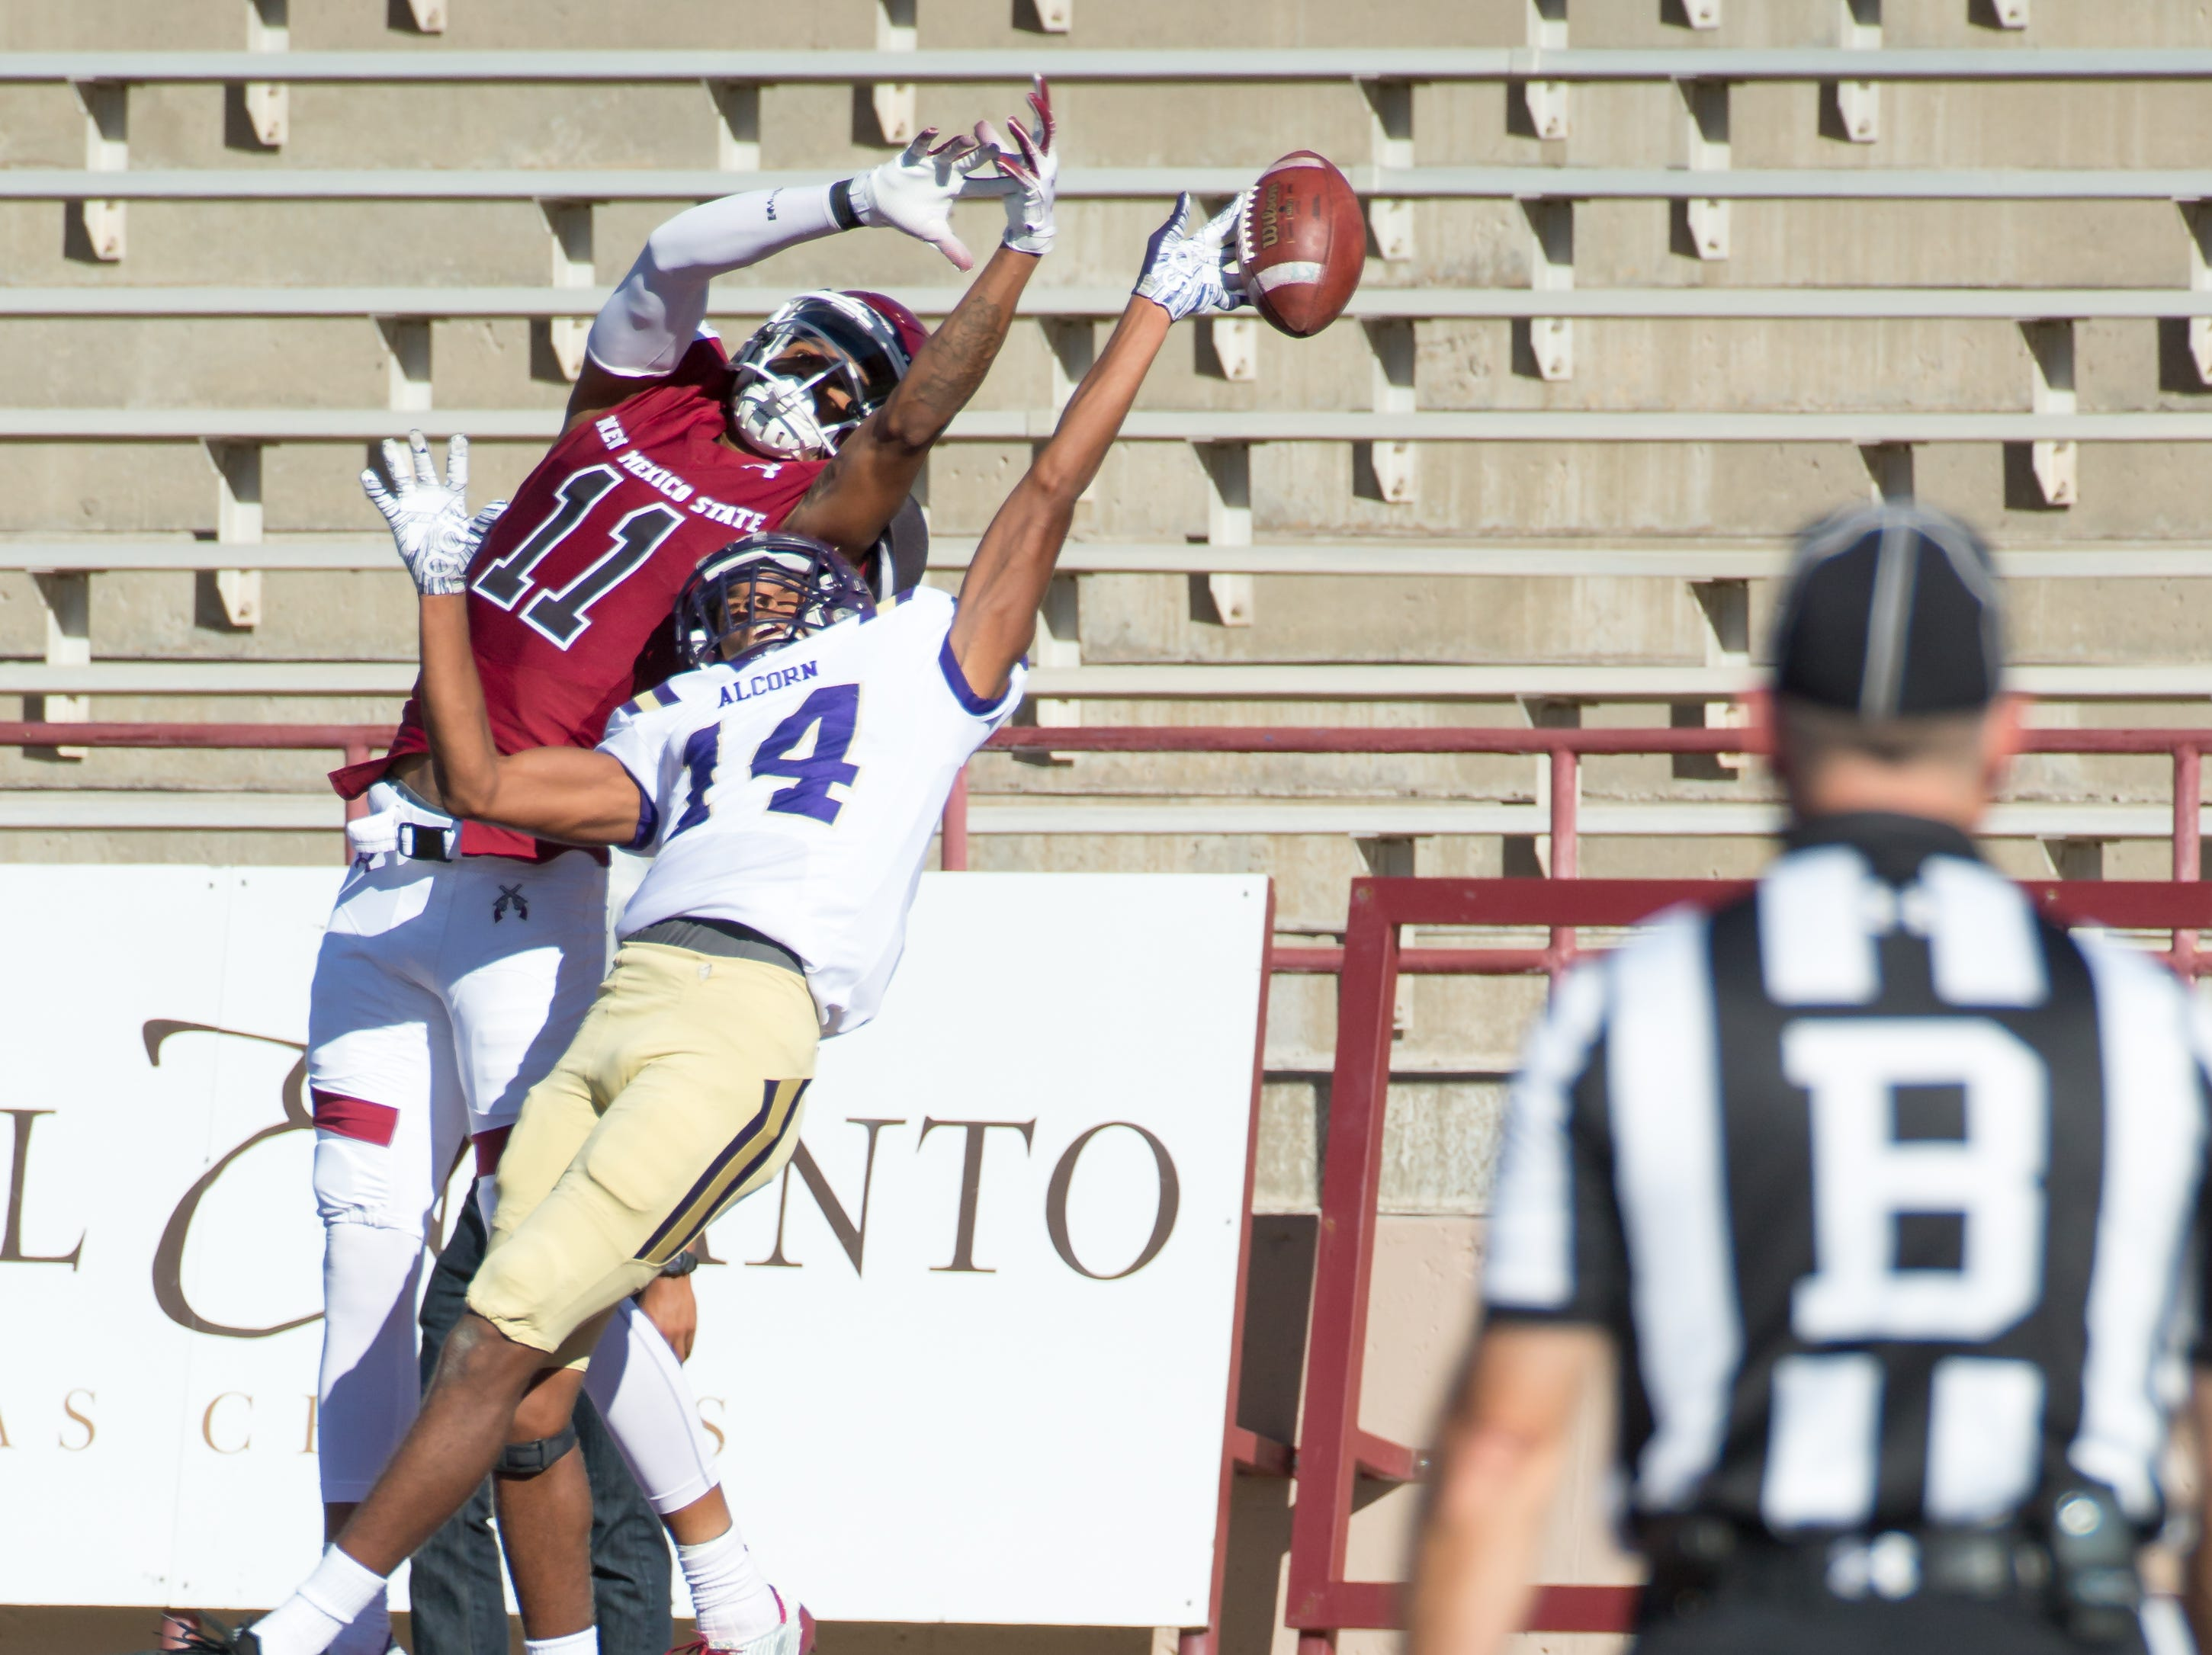 NMSU Shea Holebrook Jr. misses a pass in the endzone as Alcorn State's Calyontay Key does the same on Saturday, Nov. 3, 2018 at Aggie Memorial Stadium.